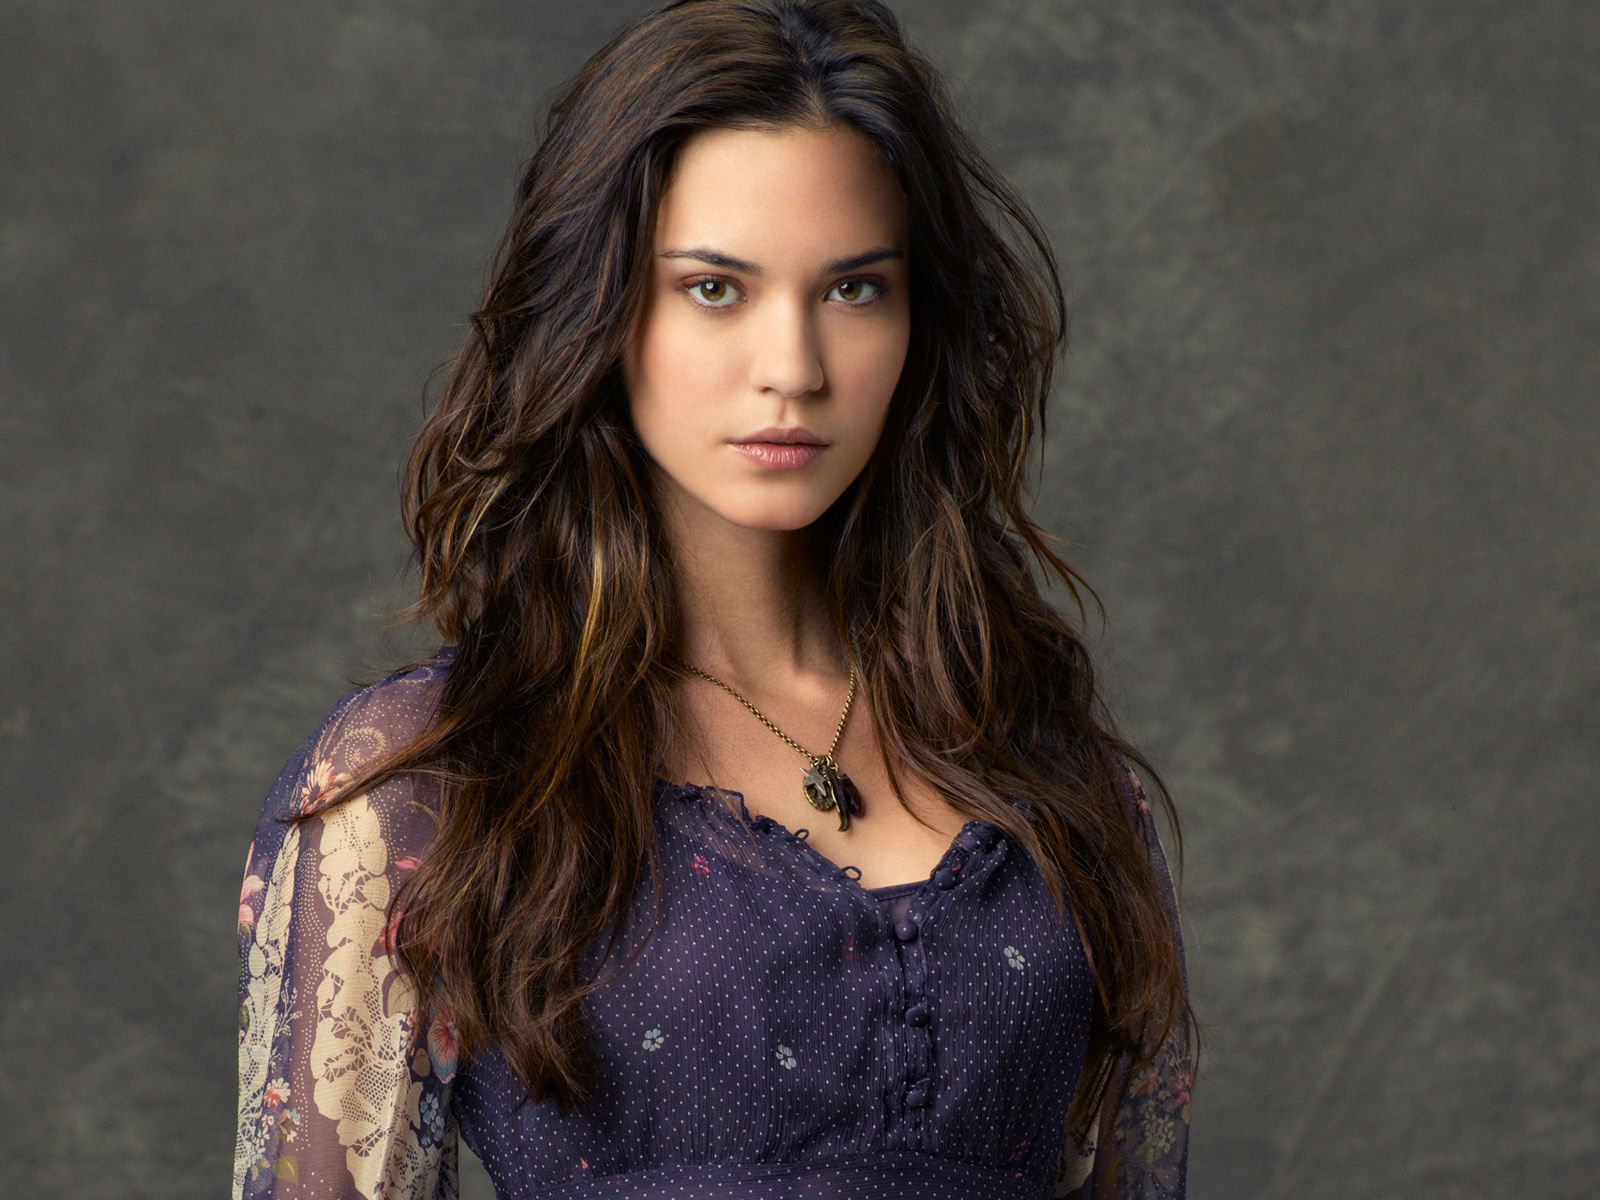 Odette Annable Cast as Reign, 'Supergirl' Season 3's Main Villain